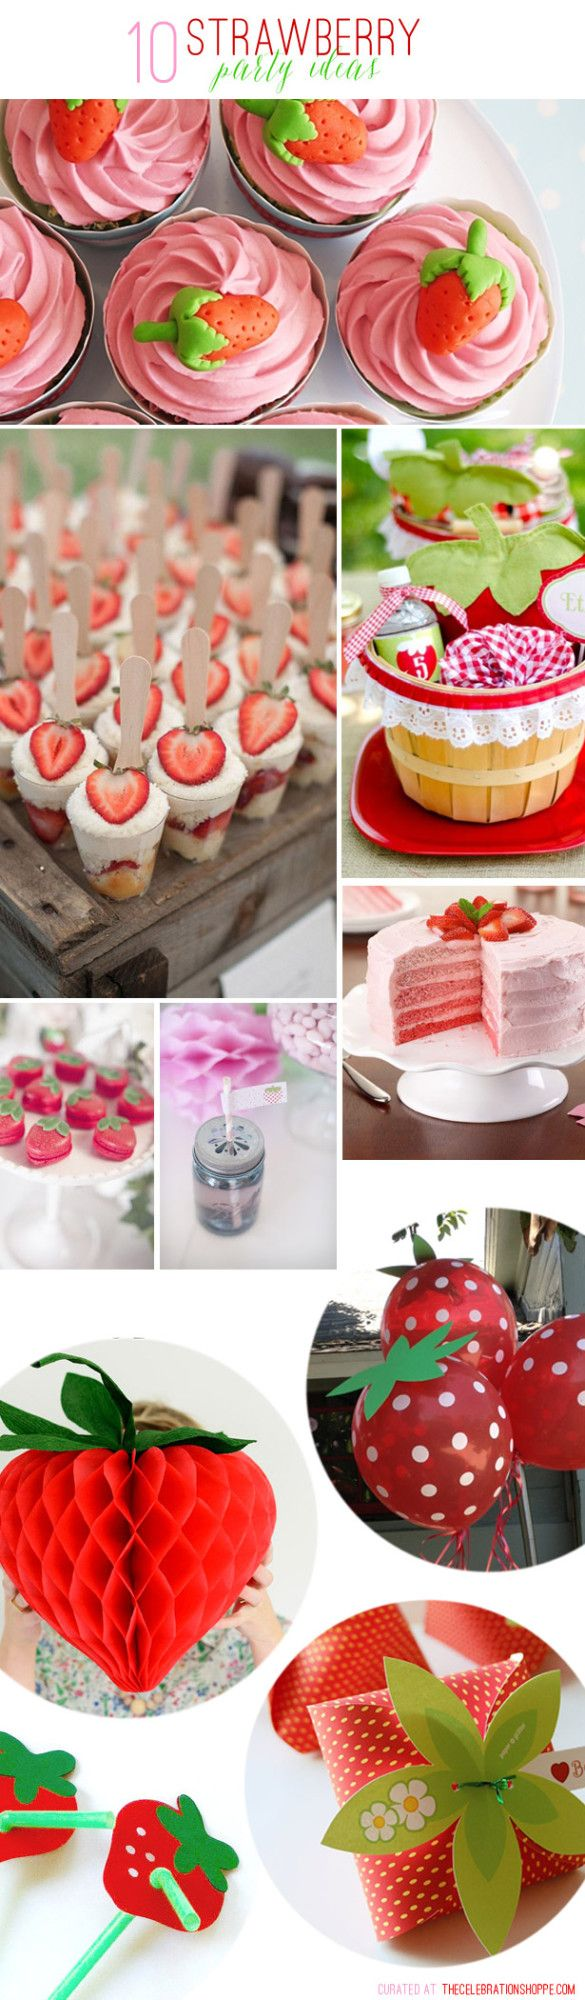 10 Simple and Creative Strawberry Party Ideas